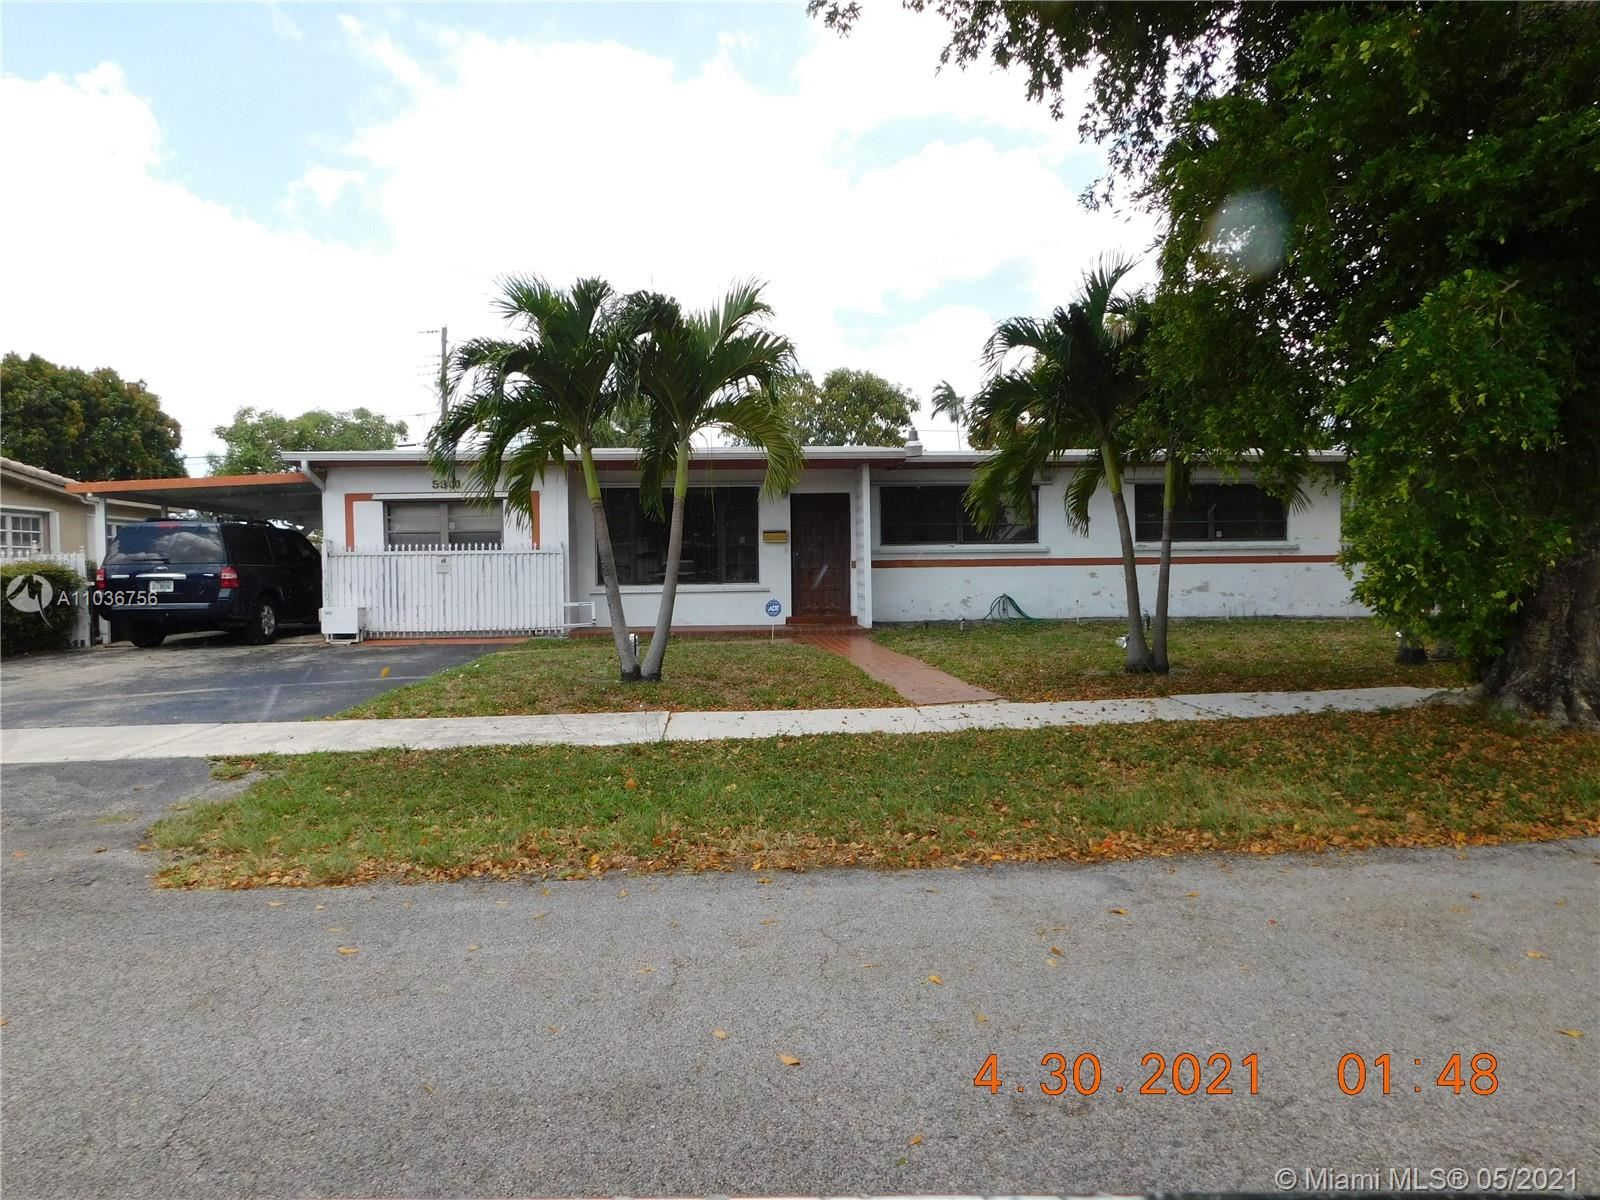 5301 W 14th Ln, Hialeah, FL 33012 - #: A11036756